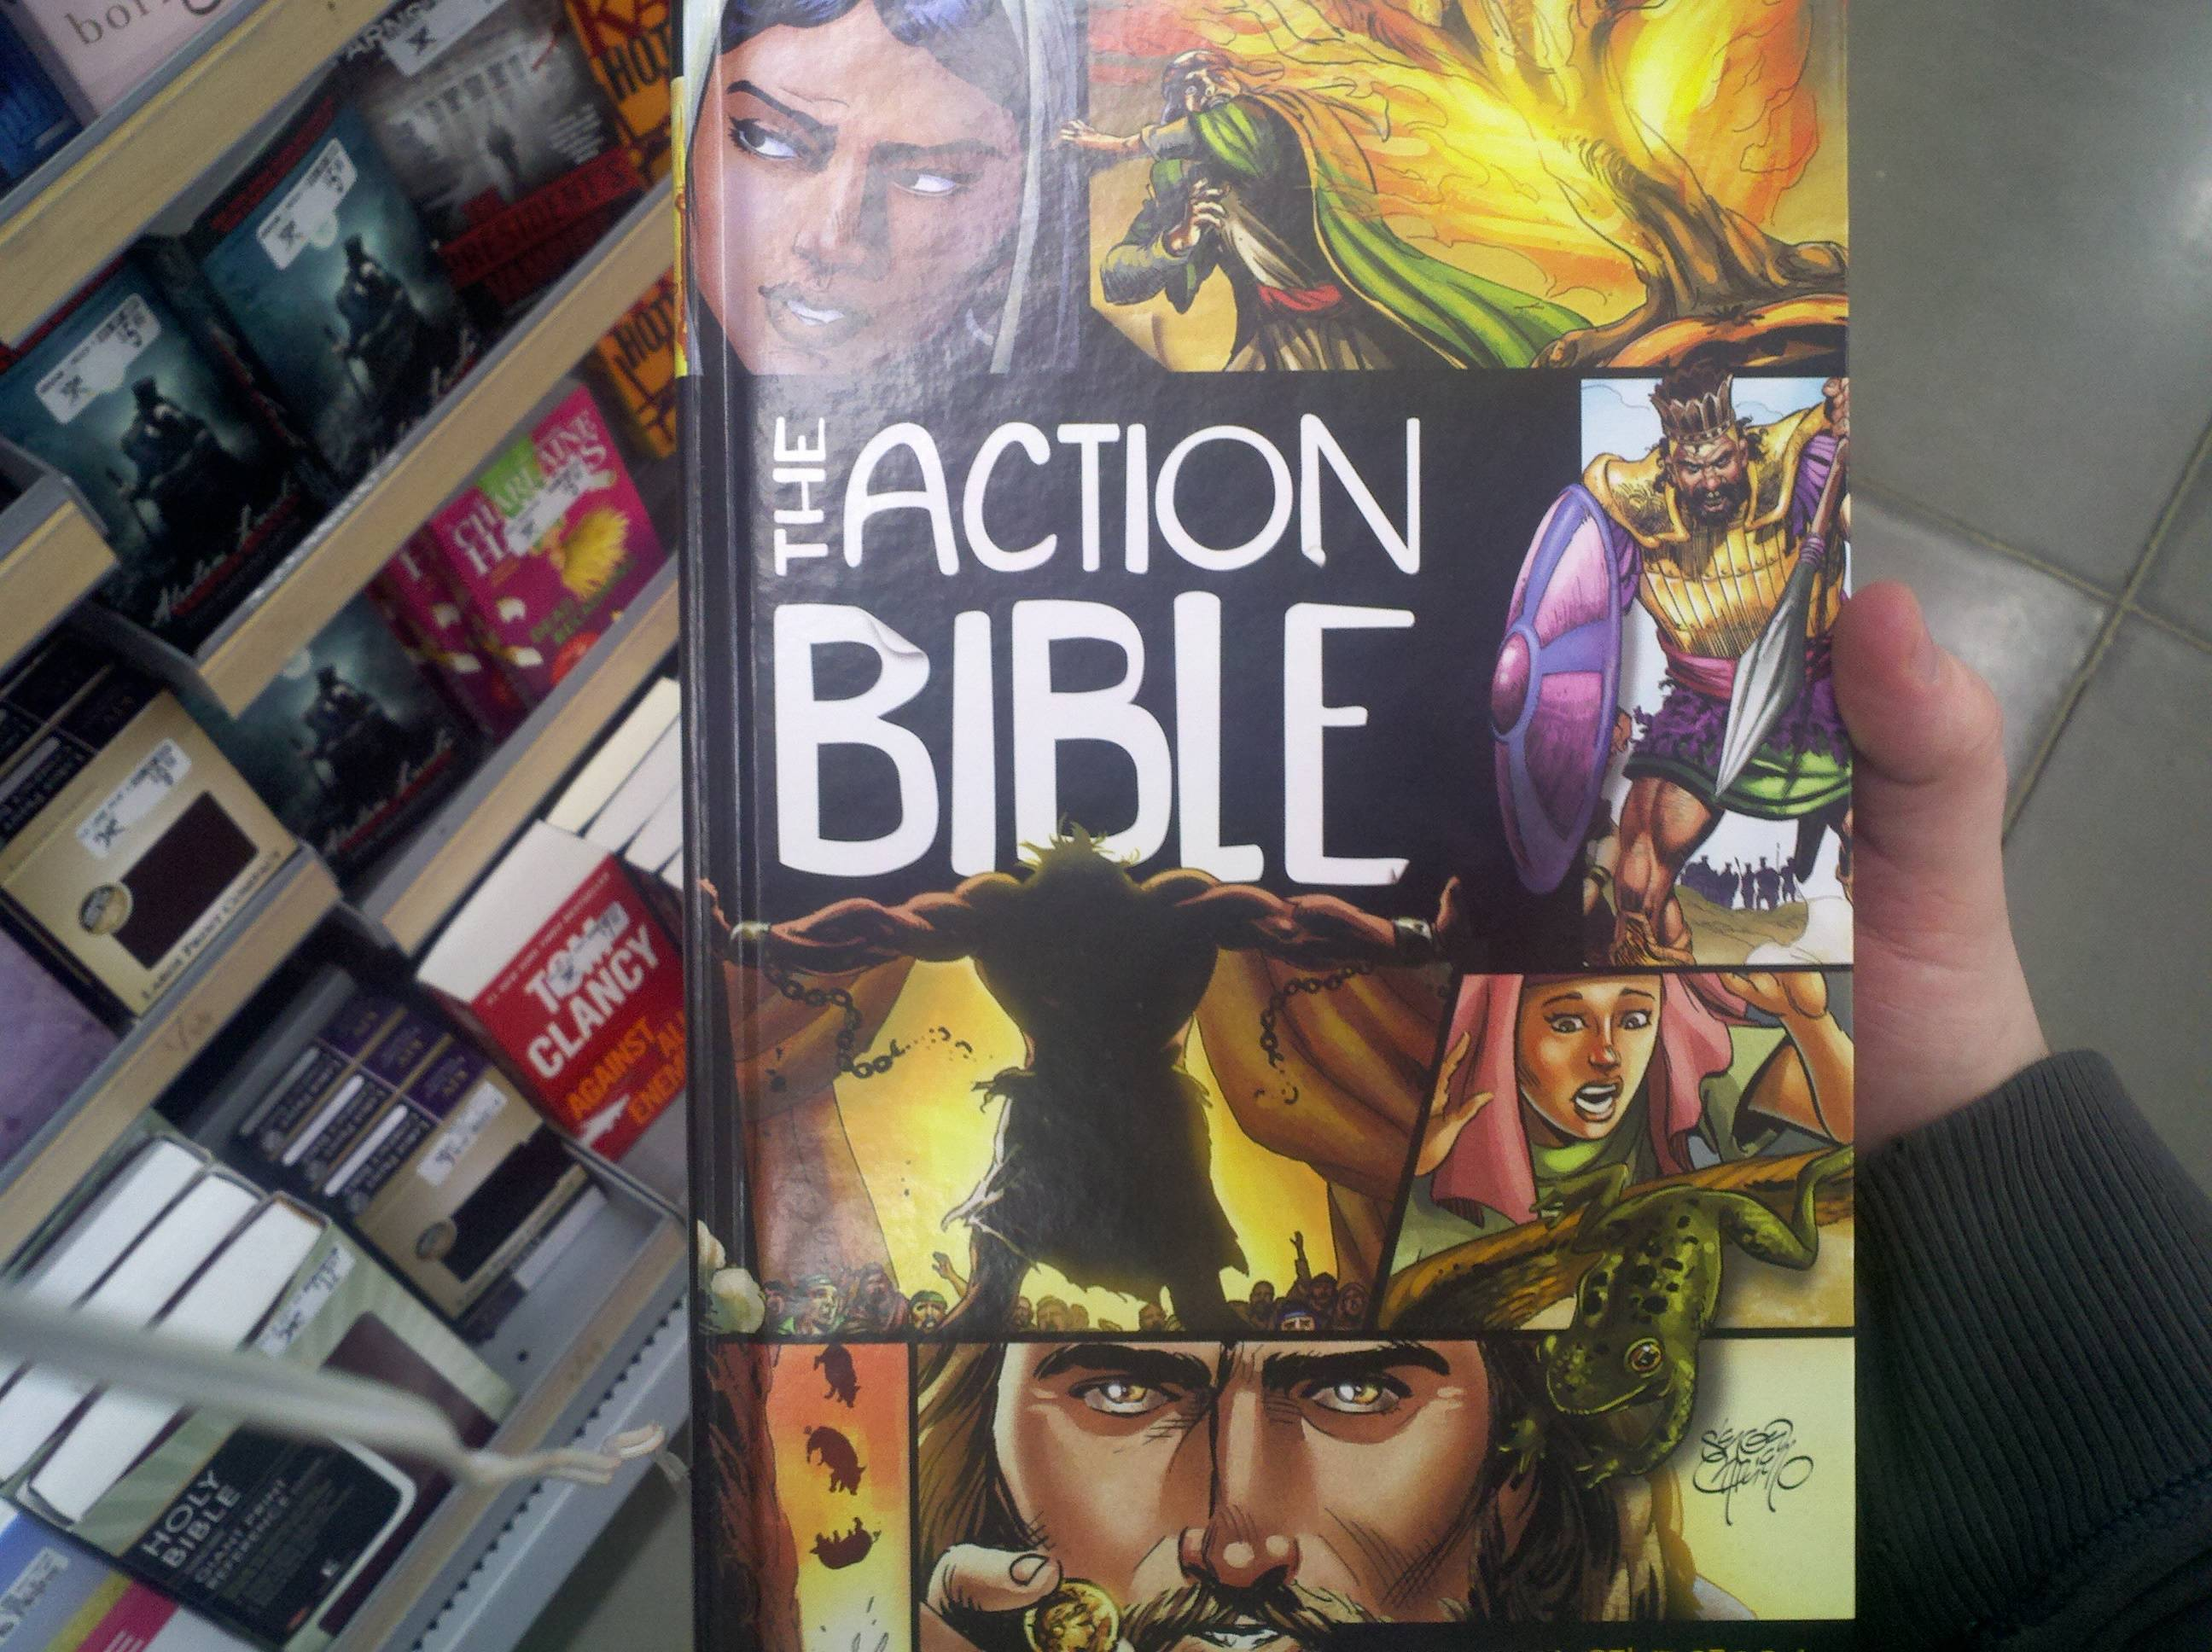 If The Avengers wrote the Bible.